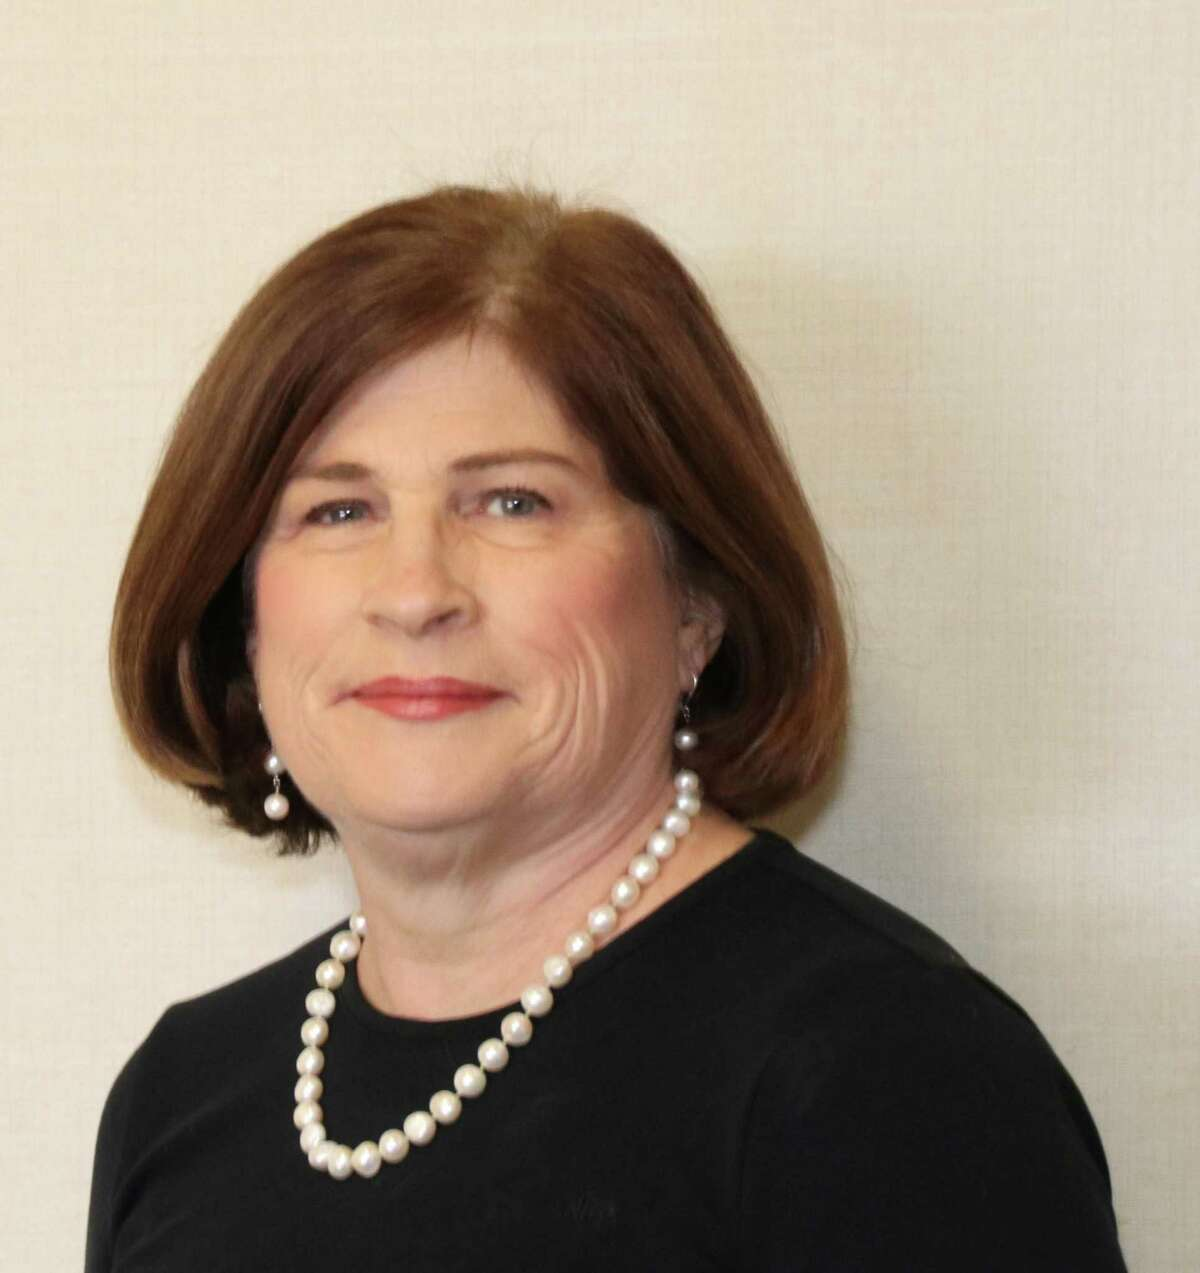 Susan E. Sprano of Thomaston and Deborah Ullman of Litchfield were recently named to the Connecticut Women's Hall of Fame Board of Trustees.